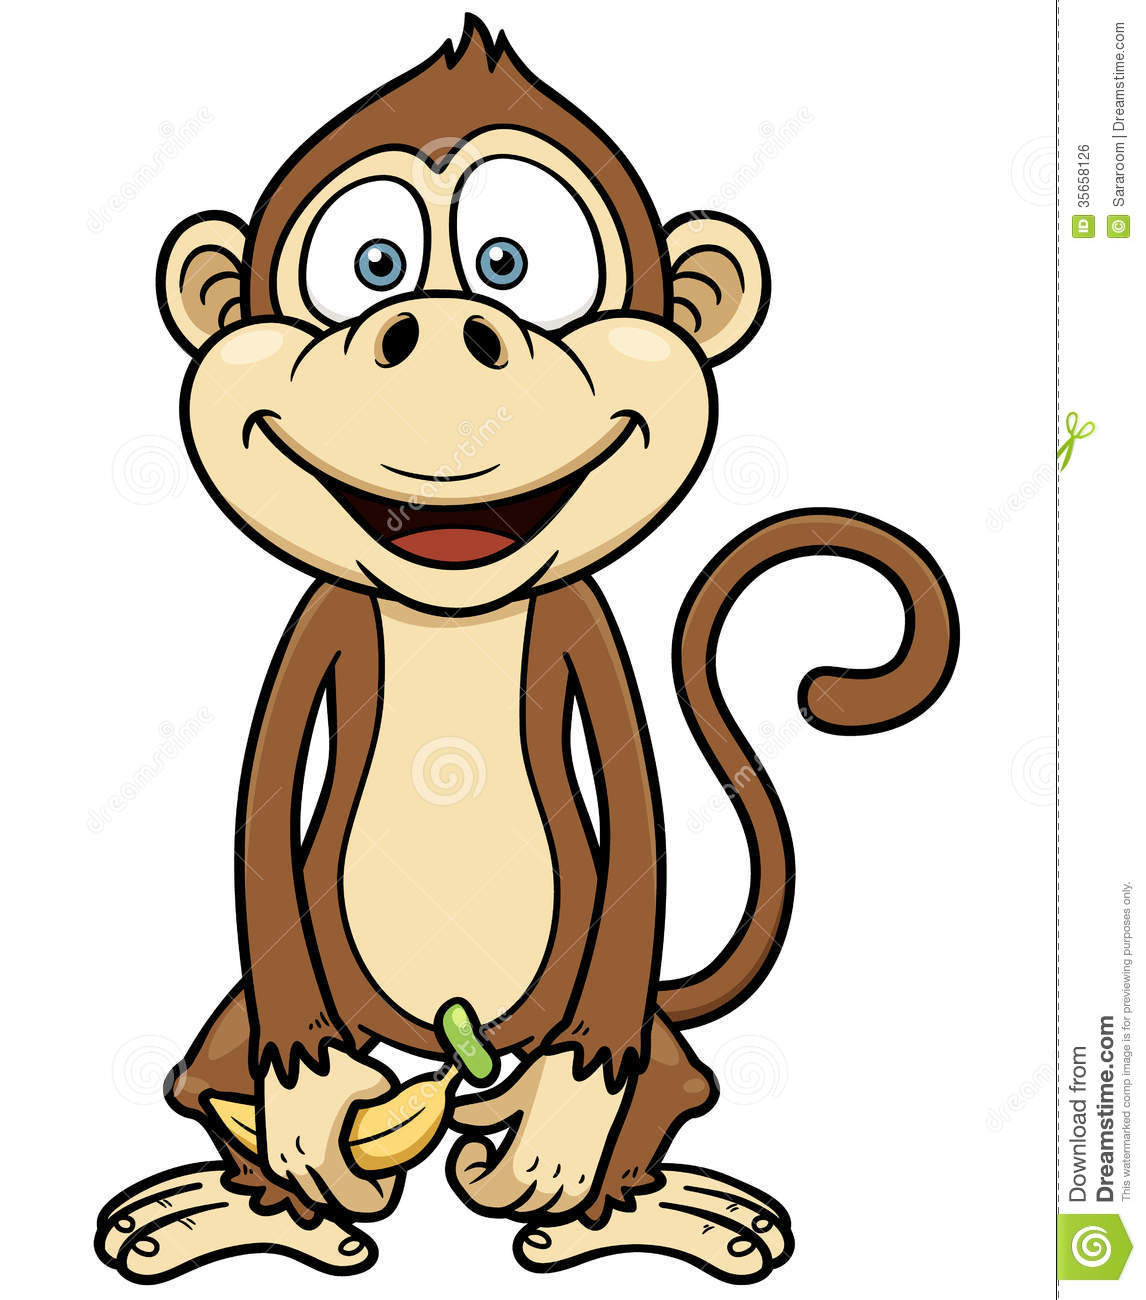 monkey cartoon wallpaper - photo #24